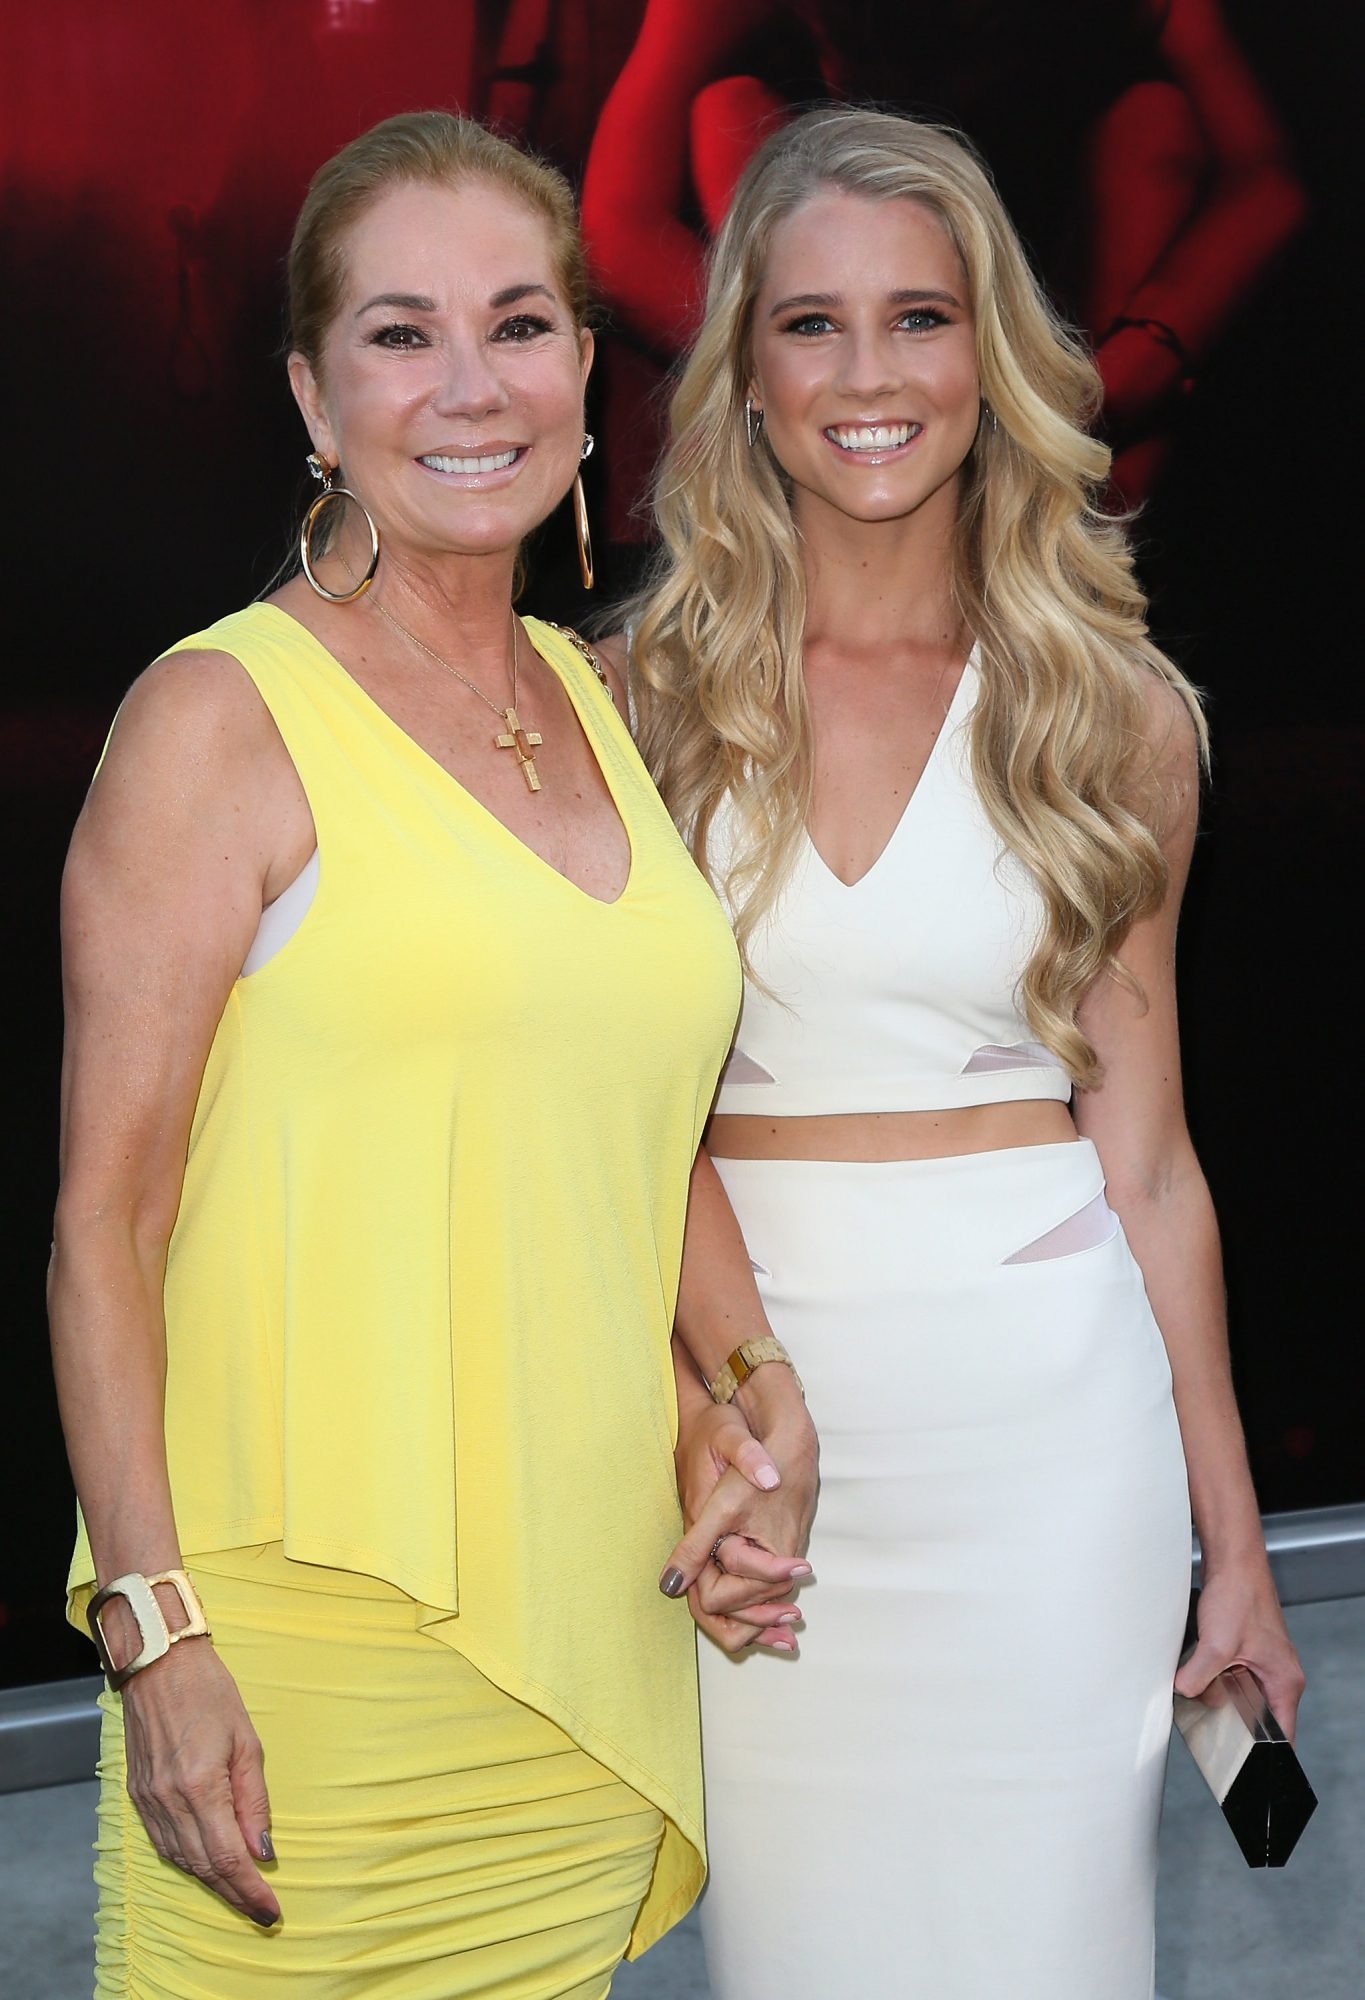 Kathie Lee Gifford and Cassidy Gifford on red carpet